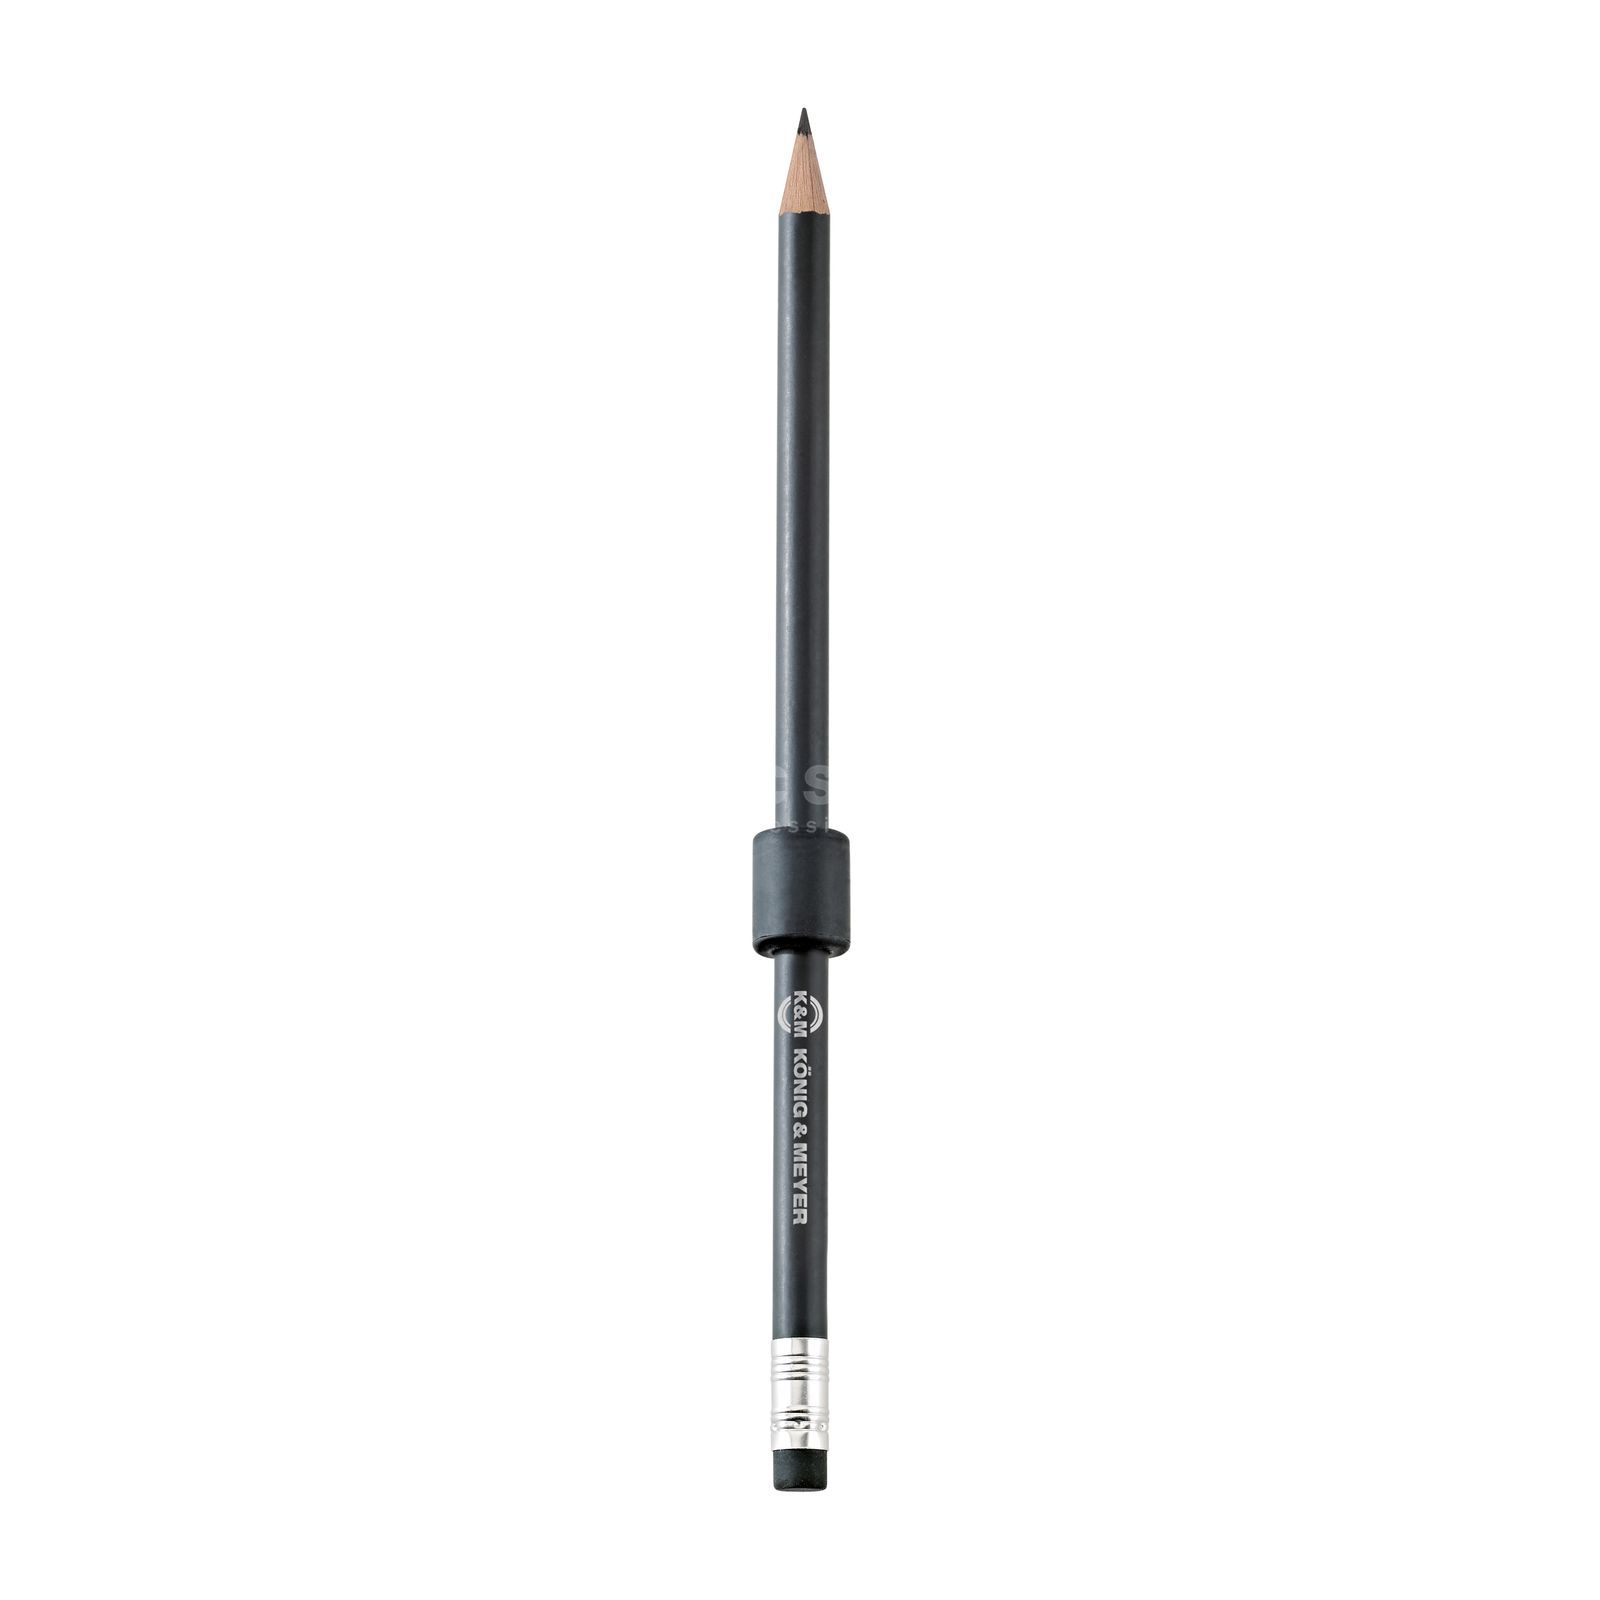 König & Meyer 16099 Holding magnet with pencil - black Zdjęcie produktu